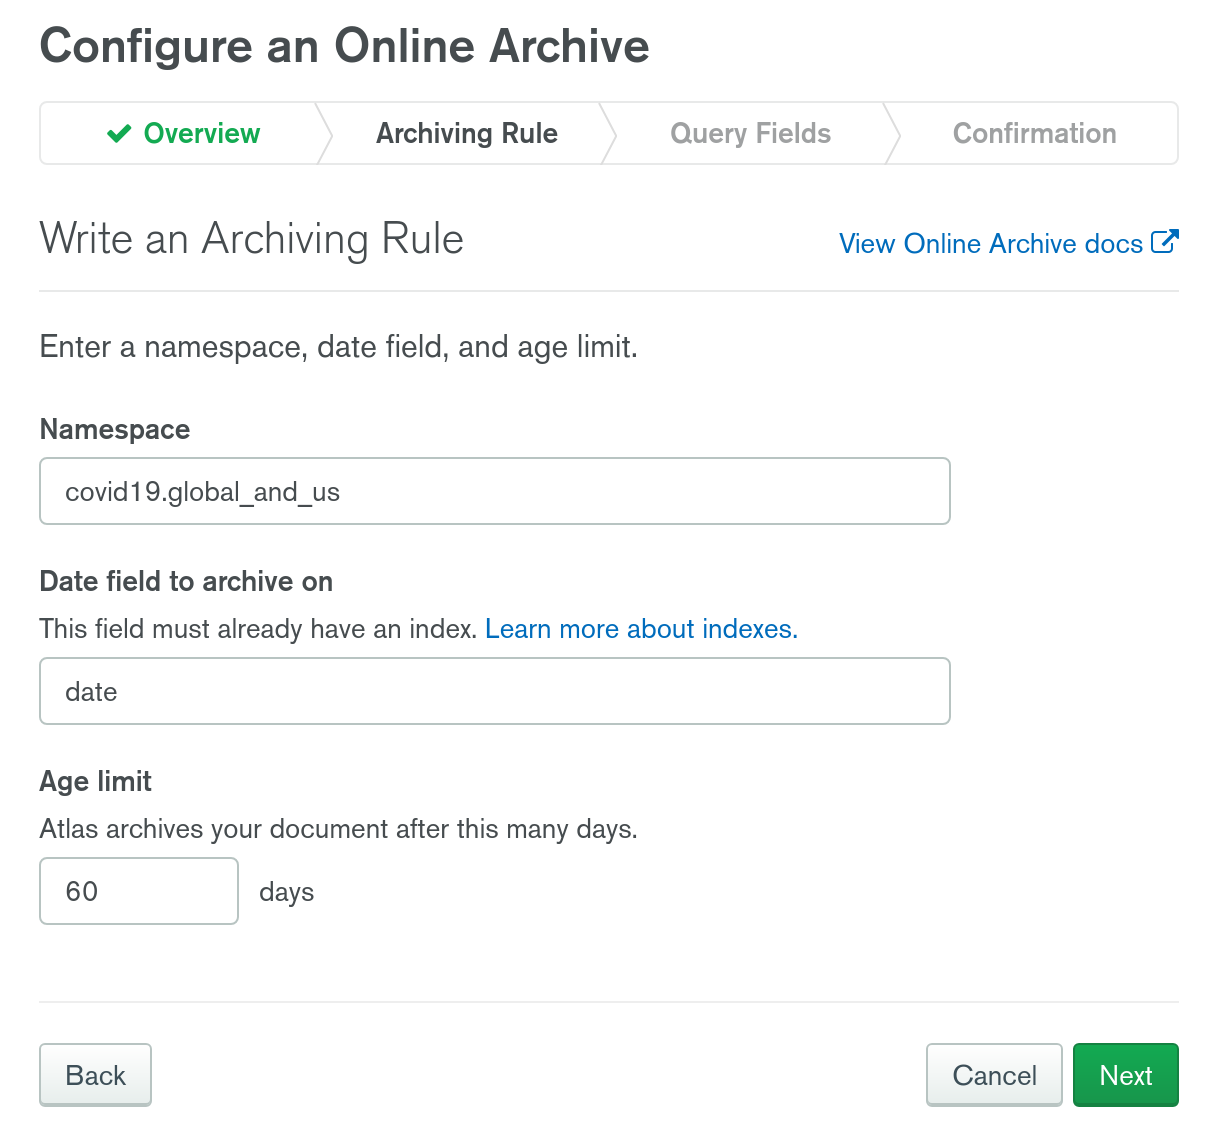 MongoDB Atlas Online Archive archiving rule